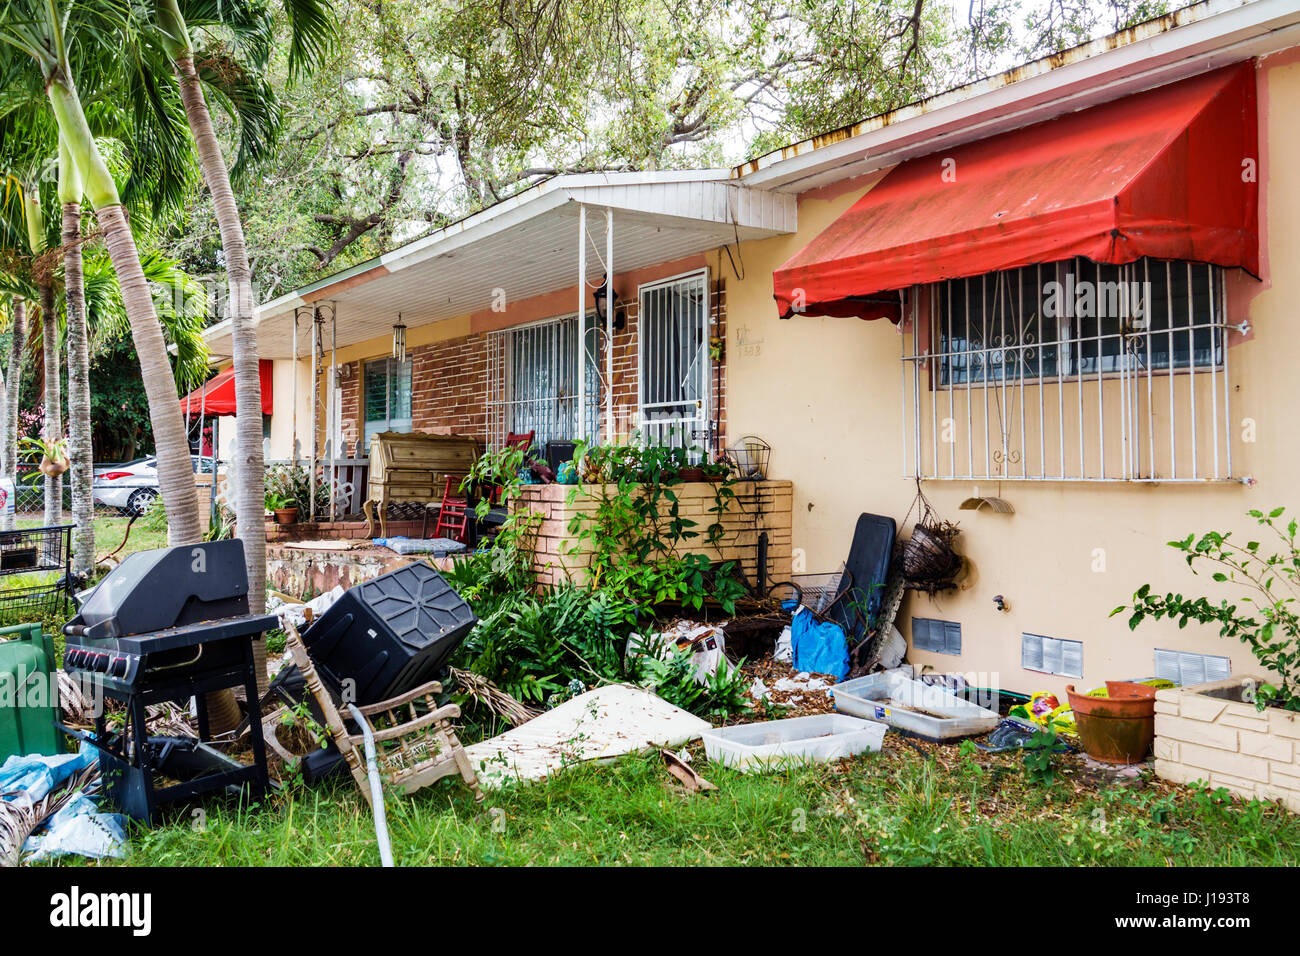 Miami Florida Little Havana House Yard Trash Neglected Exterior Dirty  Awning Junk Window Security Bars